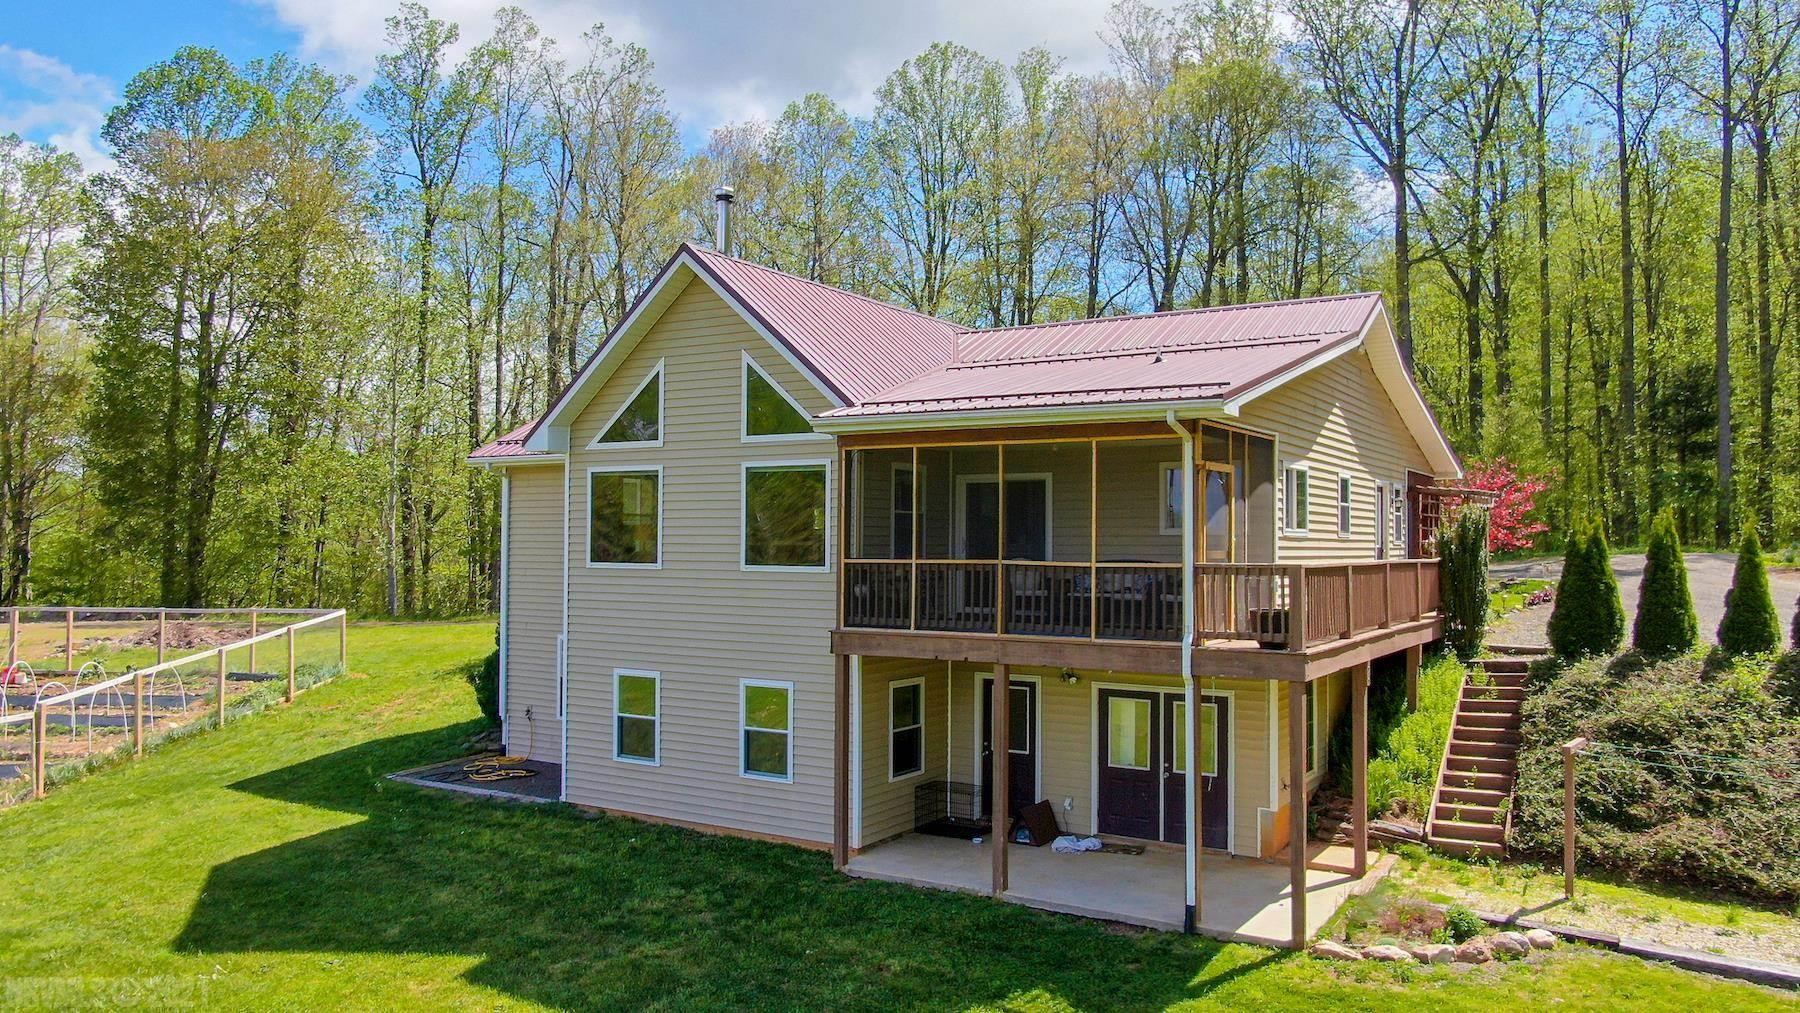 Incredible home with acreage in beautiful Floyd, VA! This property features a stunning 3200+ sqft. home with 5 bedrooms and 3 full baths. Several major updates since 2019 include a remodeled kitchen, updated bathrooms, flooring, and more. The home is perfectly situated on 16.73 acres to savor epic views of the Blue Ridge Mountains and complete privacy. Spend summer evenings enjoying sunsets and sweet mountain breezes on the screened-in deck. In the winter, stay warm with cozy radiant heated floors on both levels. There is a full finished basement with 3 bedrooms, 1 bath, another living room, and storage galore. There is wooded and open land, a newly fenced in garden, spring water, and fruit trees. There is an enormous 1400 sqft heated garage. The winding driveway brings you through the woods with babbling streams and age-old rock walls. Create the hobby farm of your dreams and enjoy country living at its best!